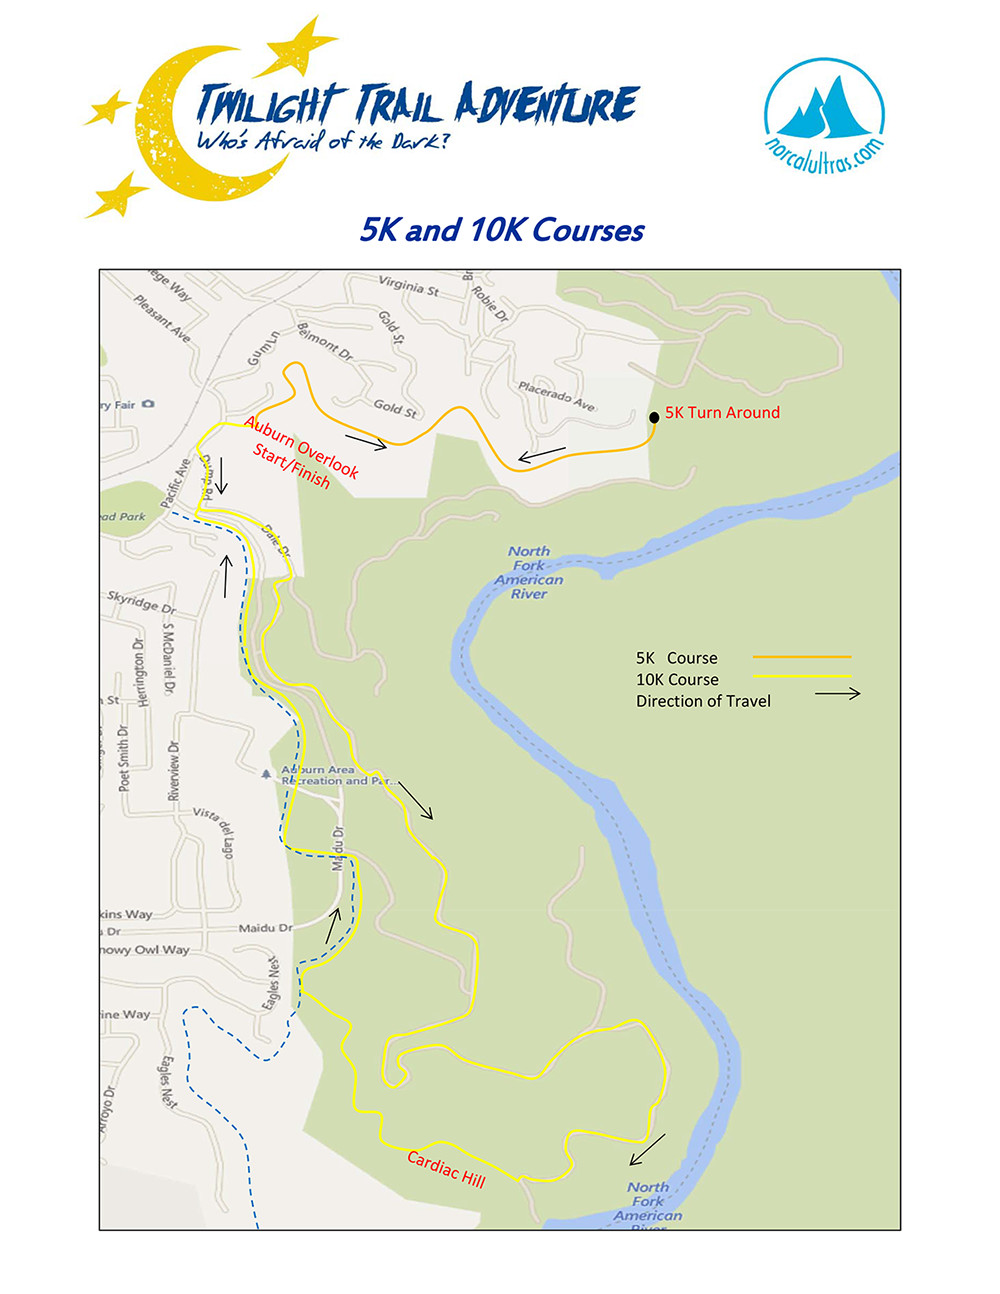 download the course map PDF